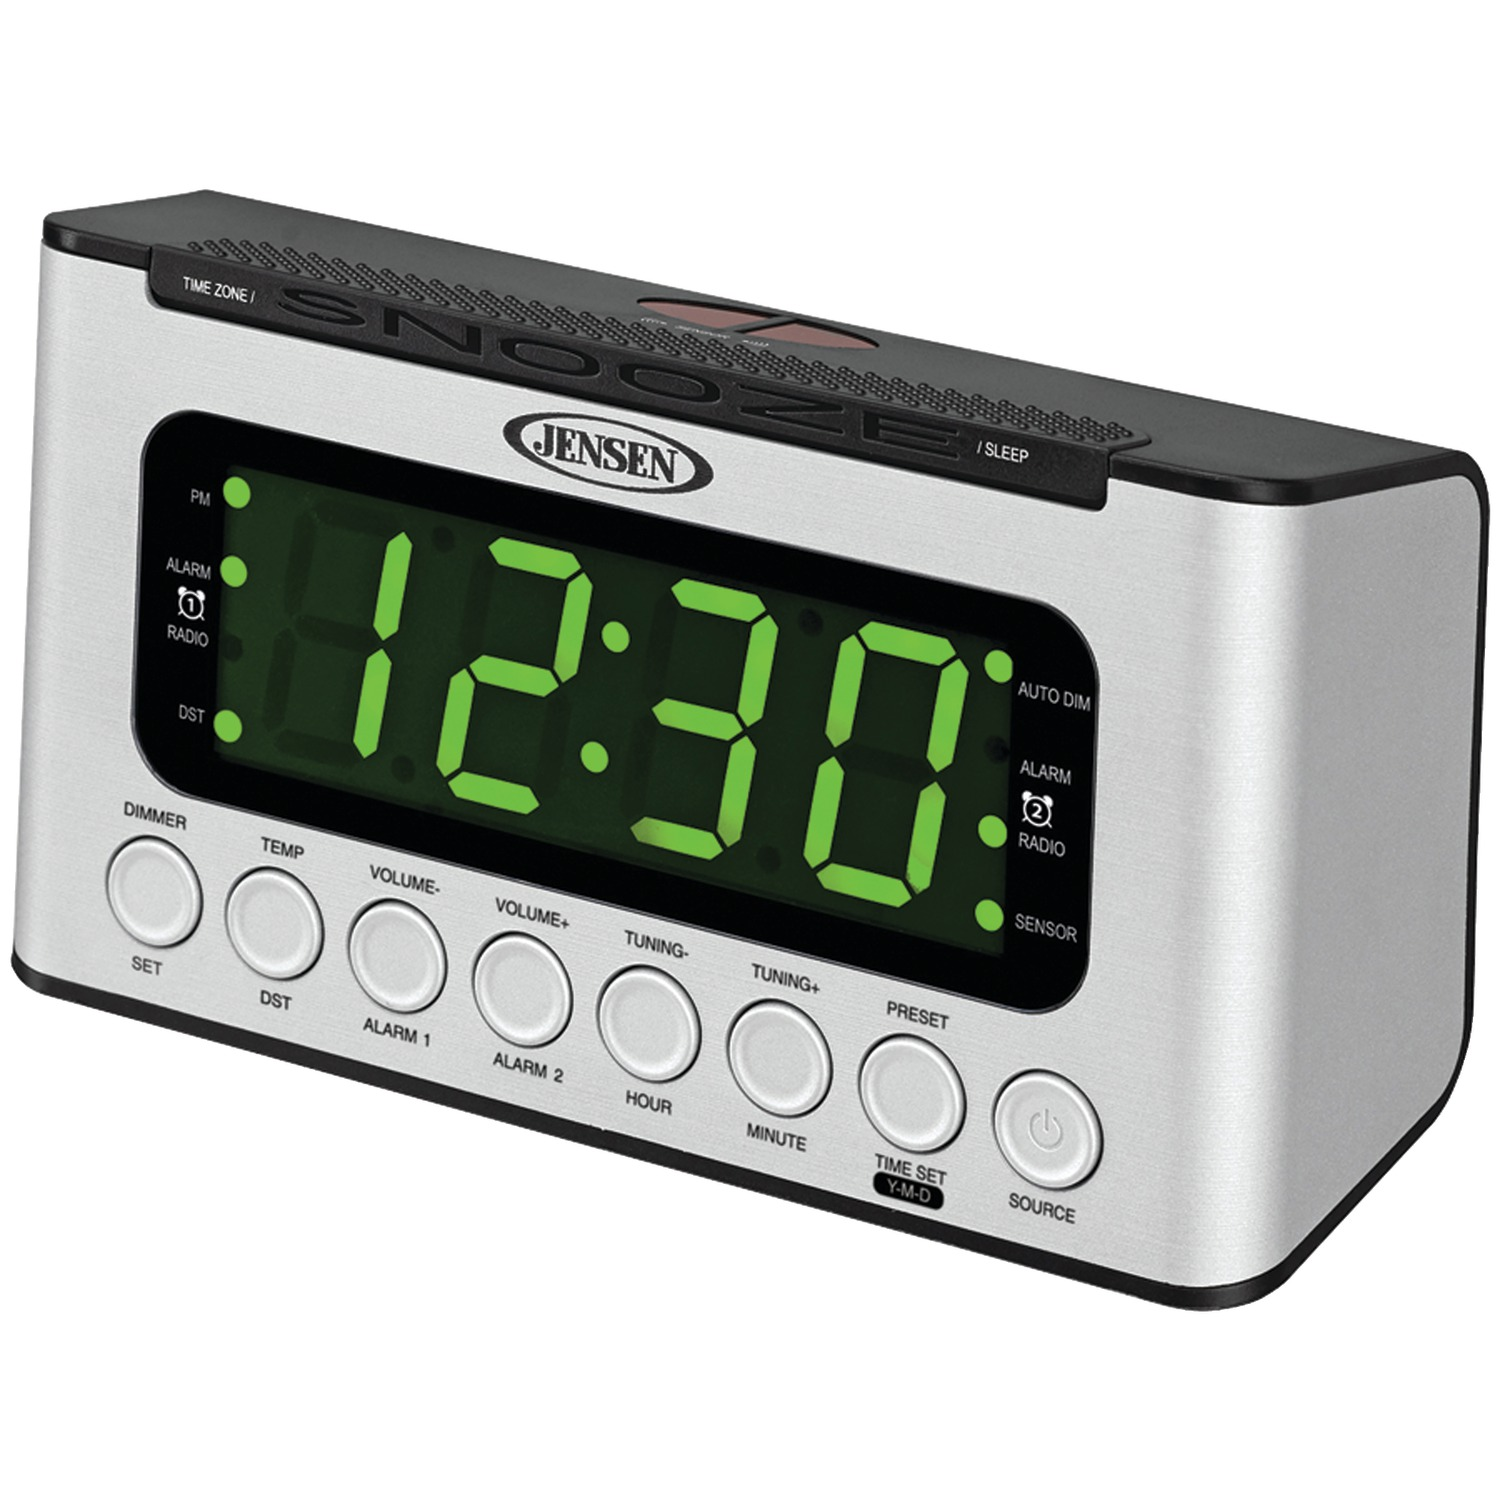 jensen jcr 231 digital am fm dual alarm clock radio with wave sensor. Black Bedroom Furniture Sets. Home Design Ideas